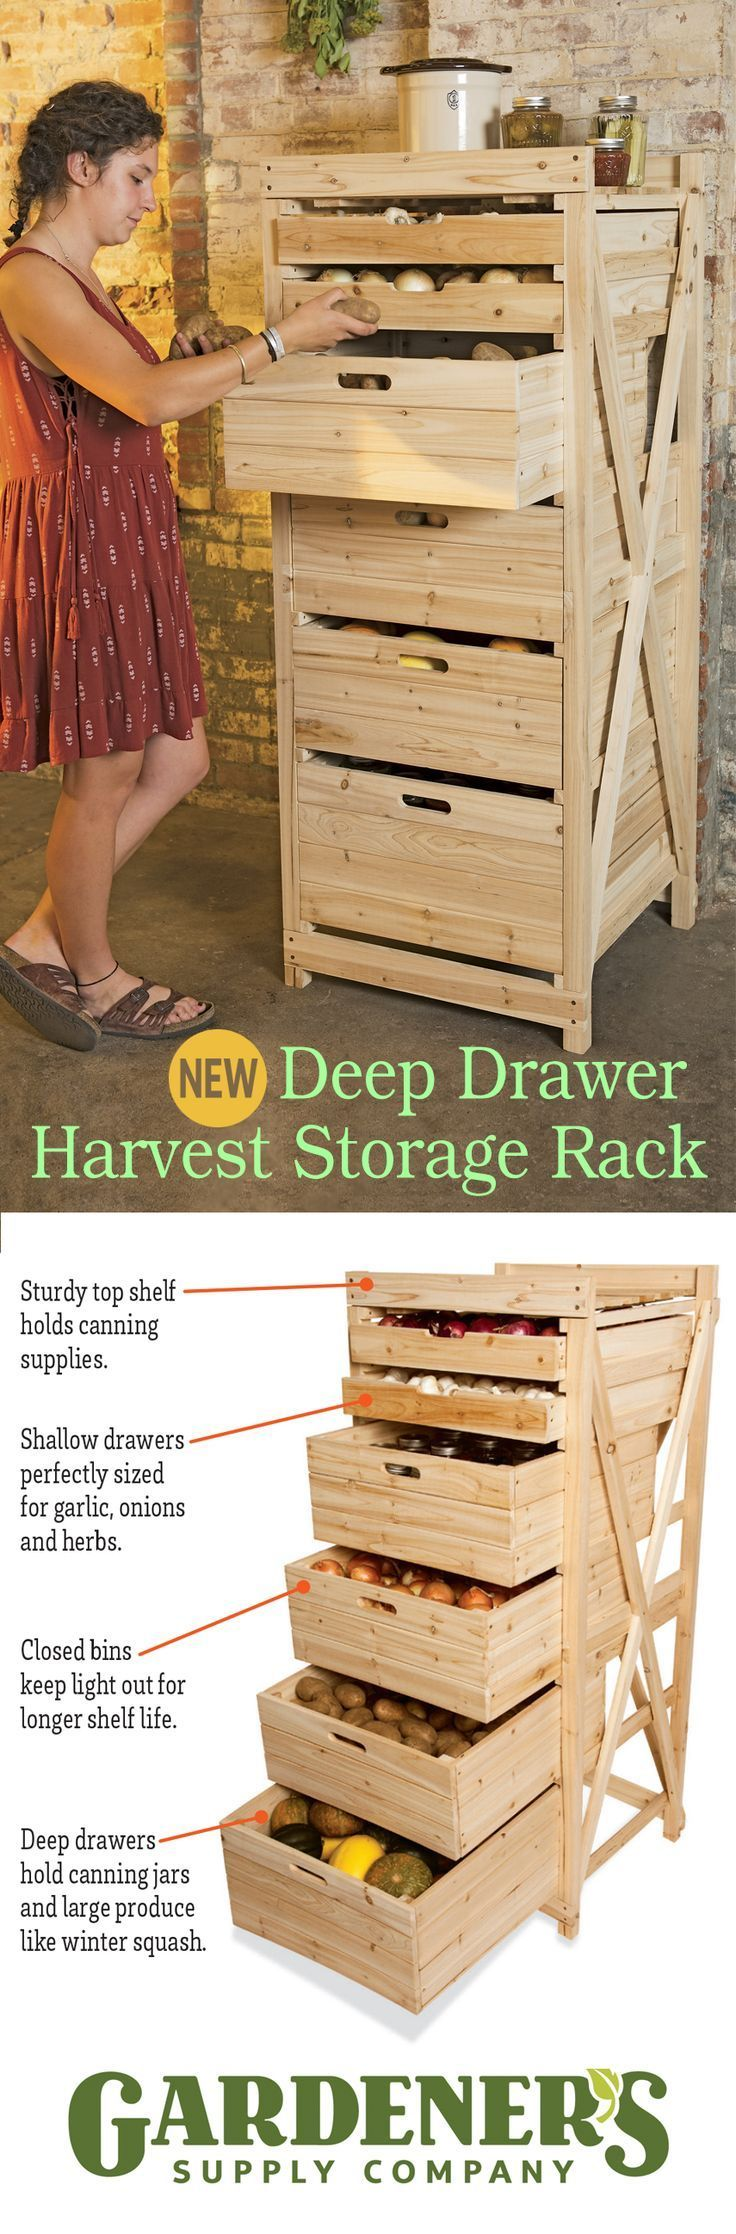 Vegetable Storage Rack Has Deep Drawers for Dark Storage